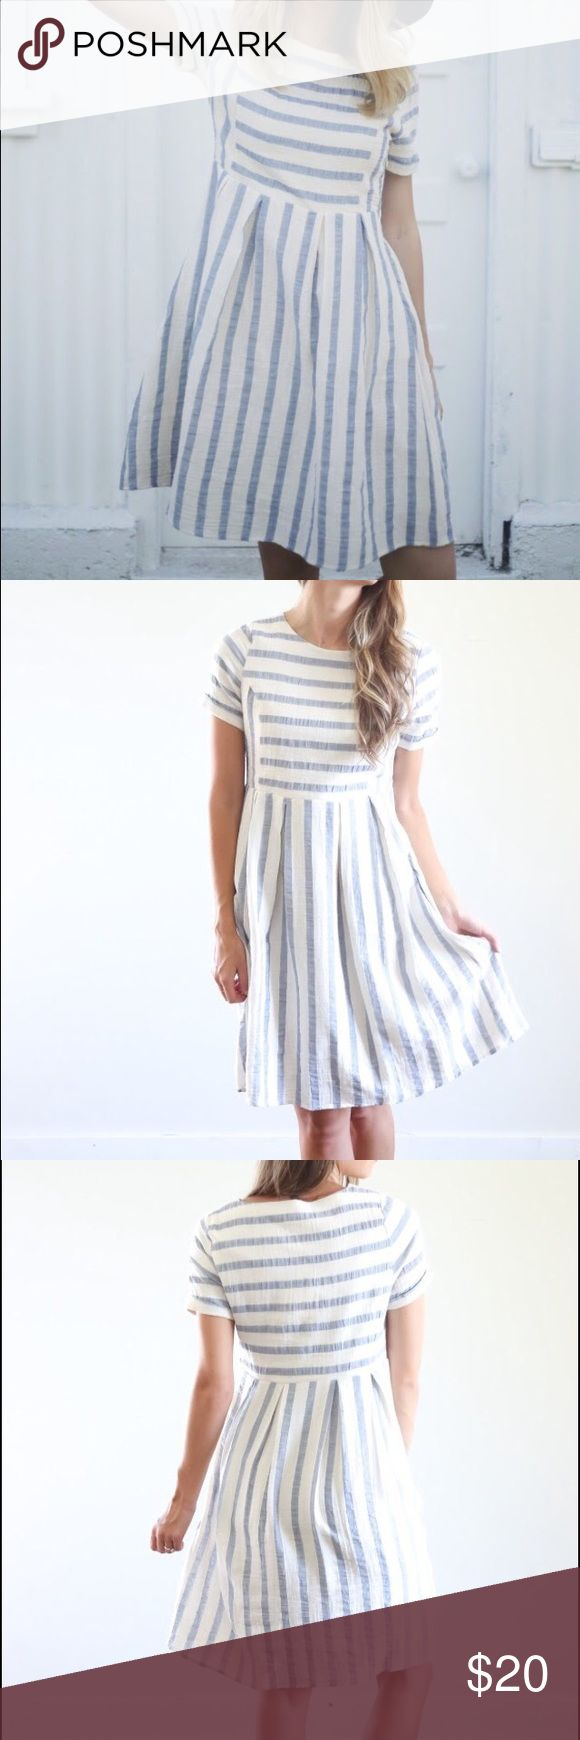 Piper & Scoot Blue/Cream Stripe Day Dress NWOT blue and cream striped day dress from online shop Piper and Scoot. Side zip and with pockets! Fits true to size. (Brand is marked Madewell for exposure.) Madewell Dresses